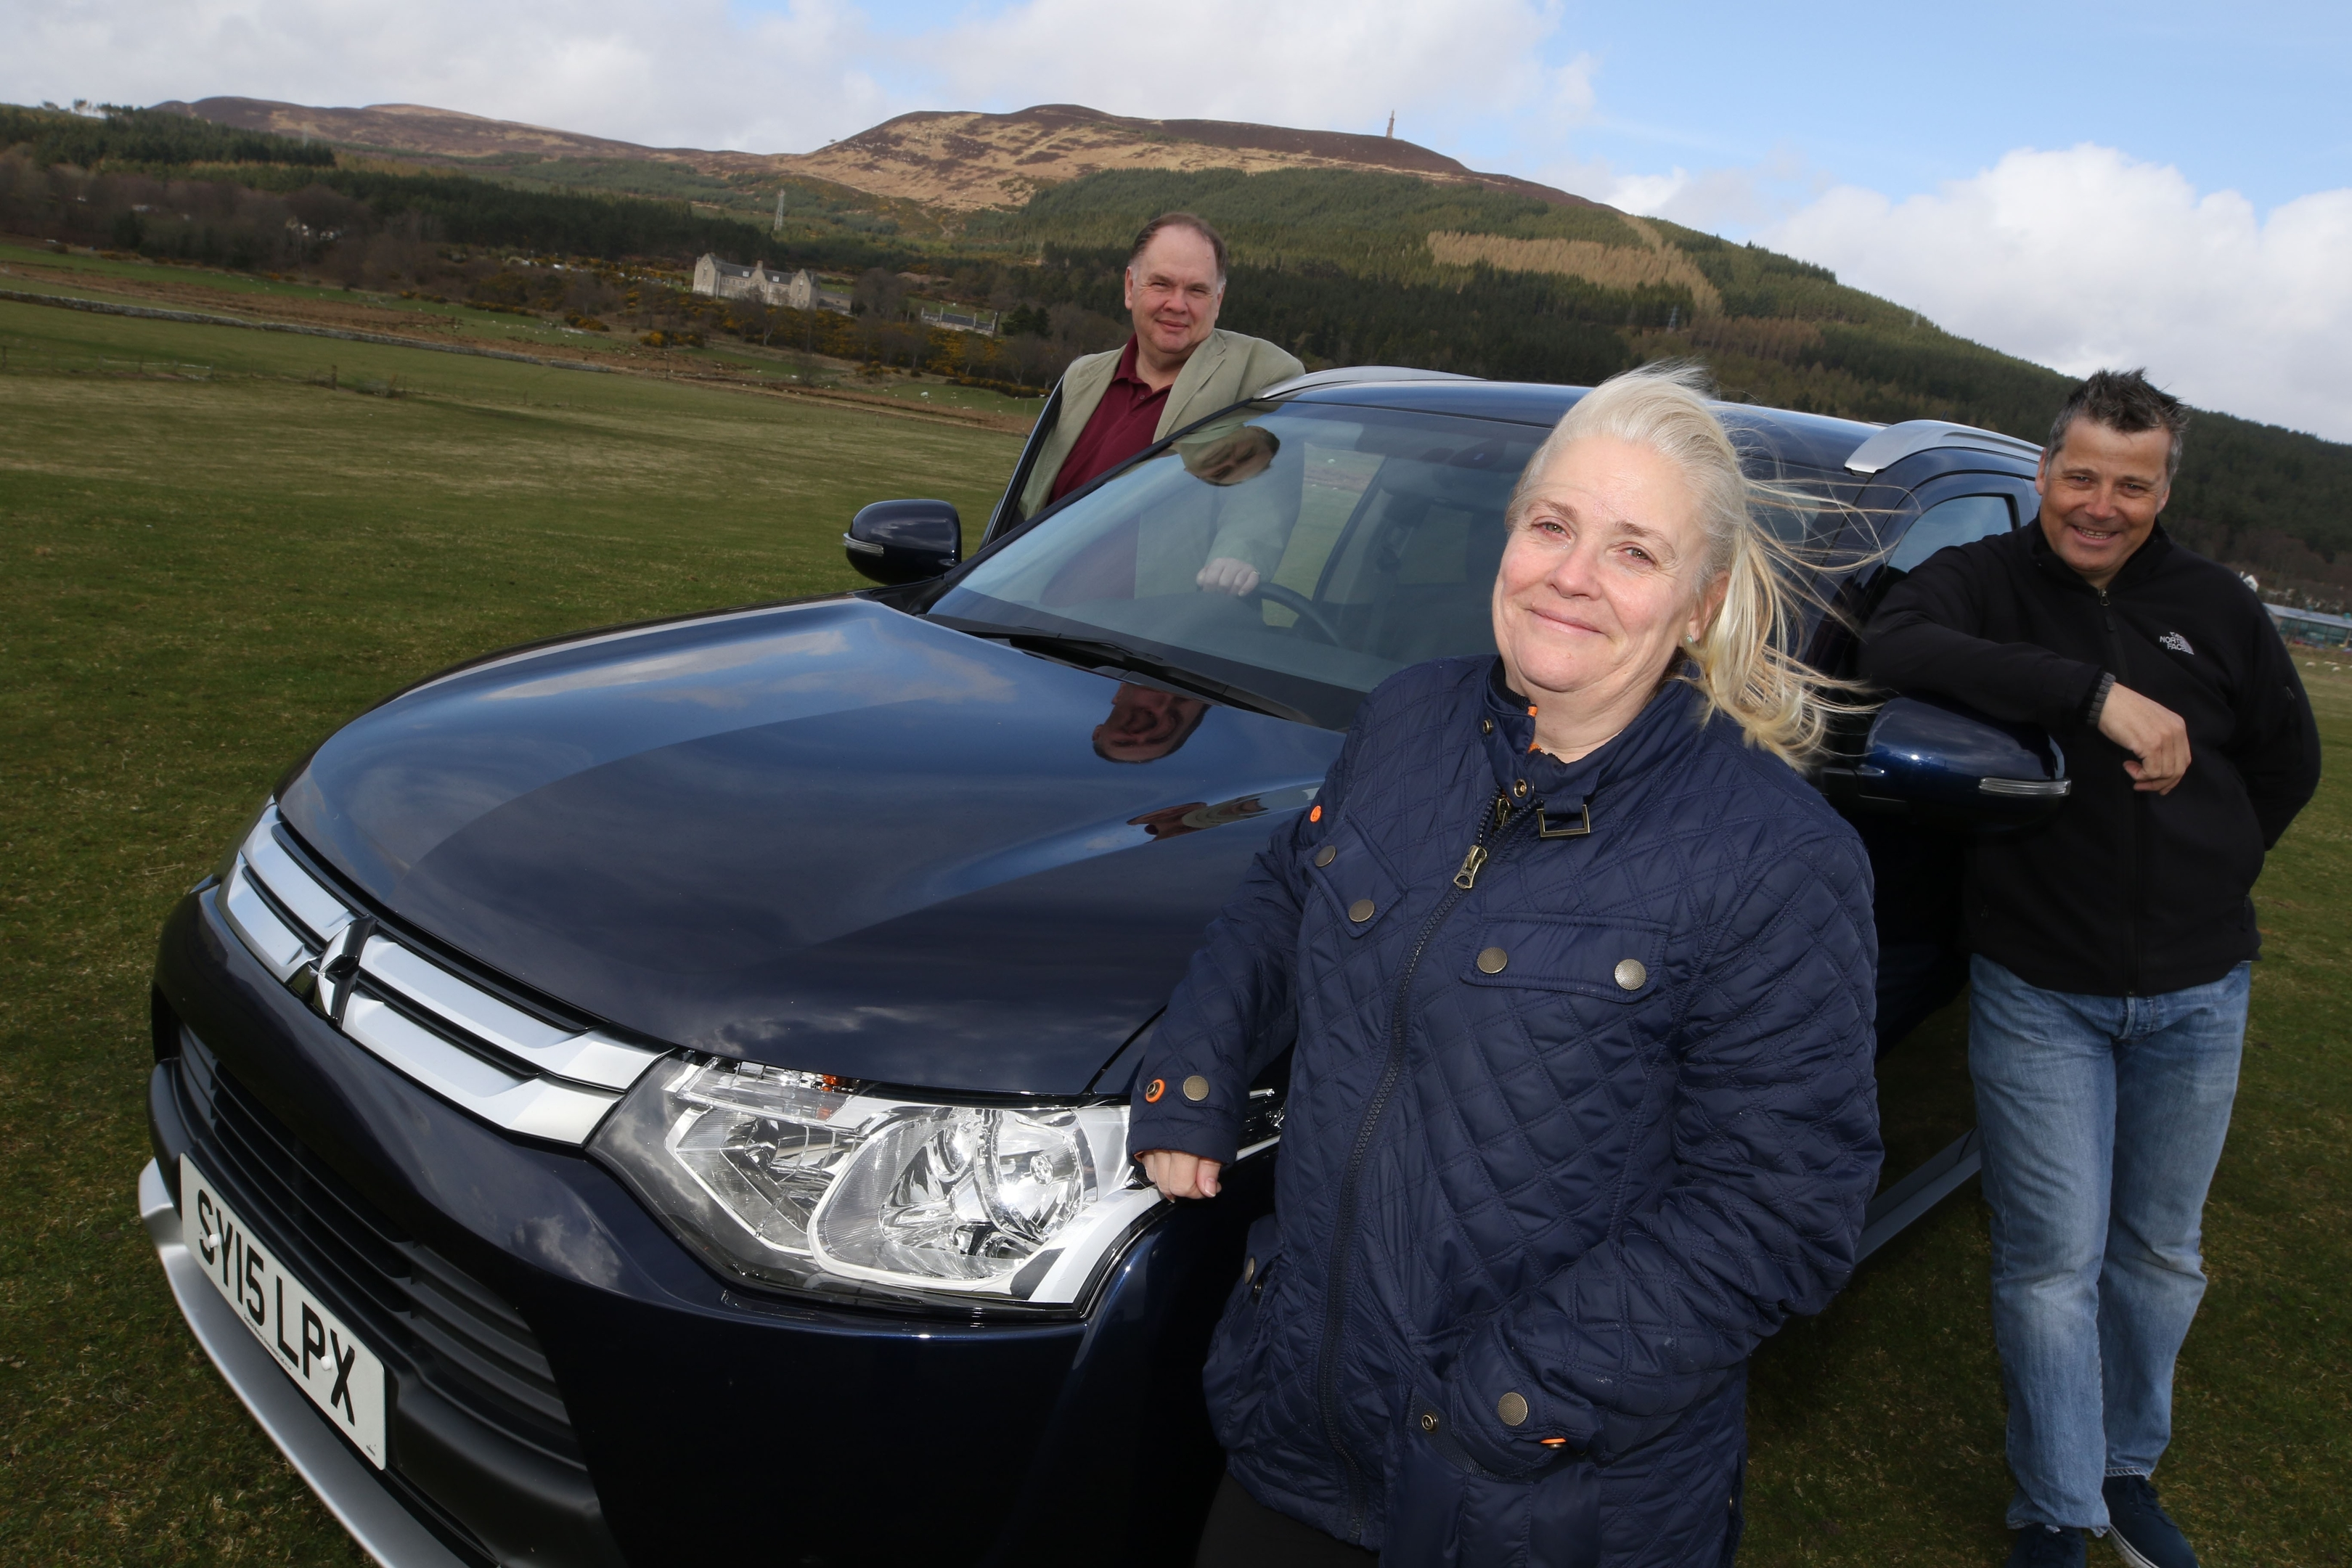 Pictured are Andy Cooper (Go Golspie board member), Tracey Campbell (event organiser) and John Murray (chairman of Go Golspie), with one of the 4x4s that will make the trip